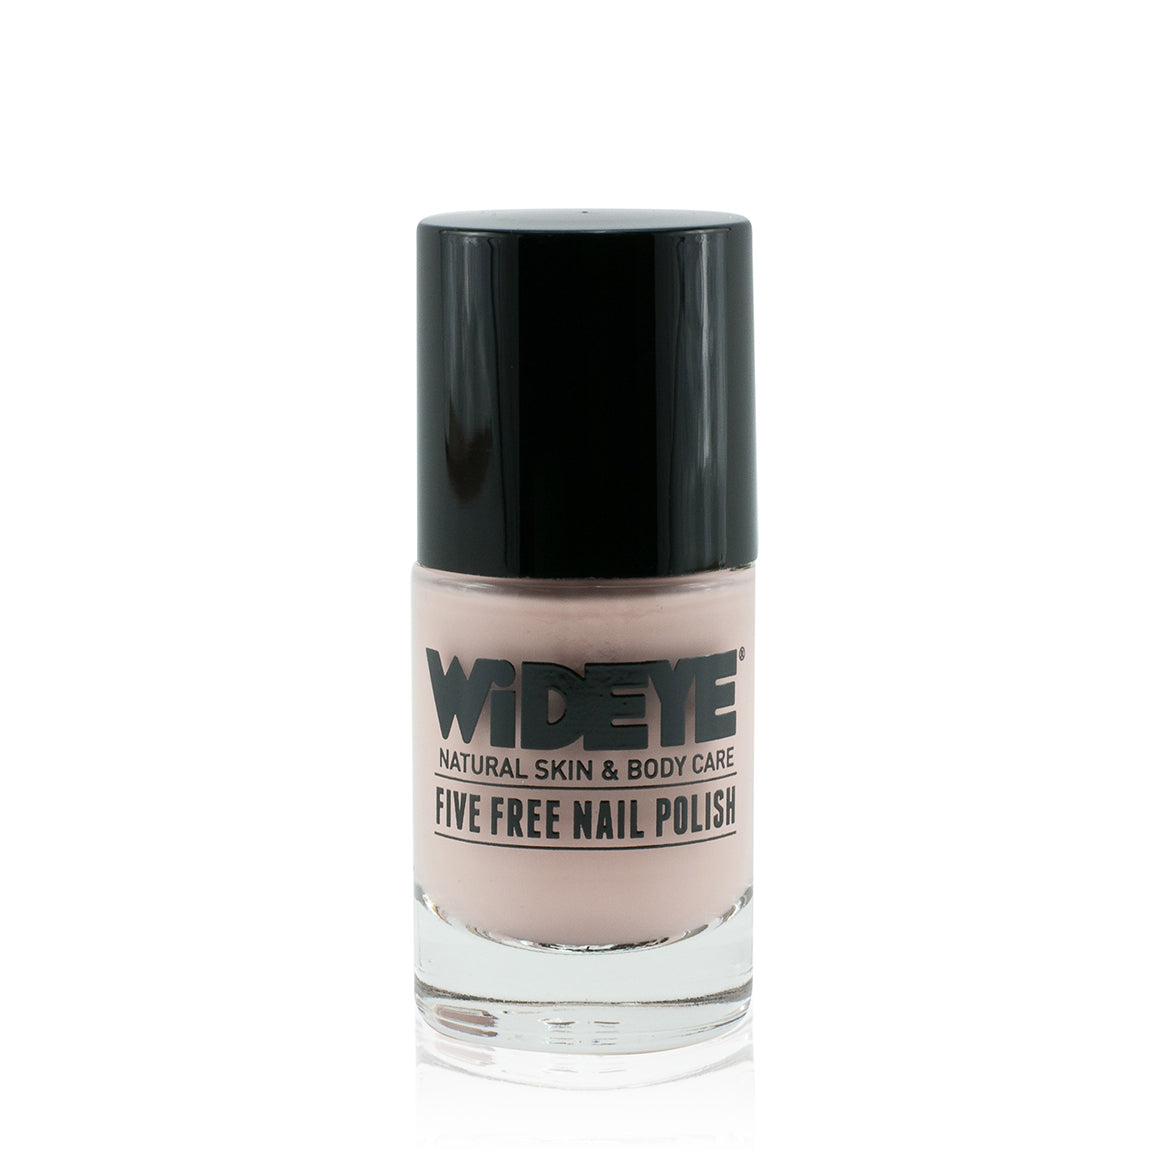 Pale pink nail varnish in glass bottle by WiDEYE.